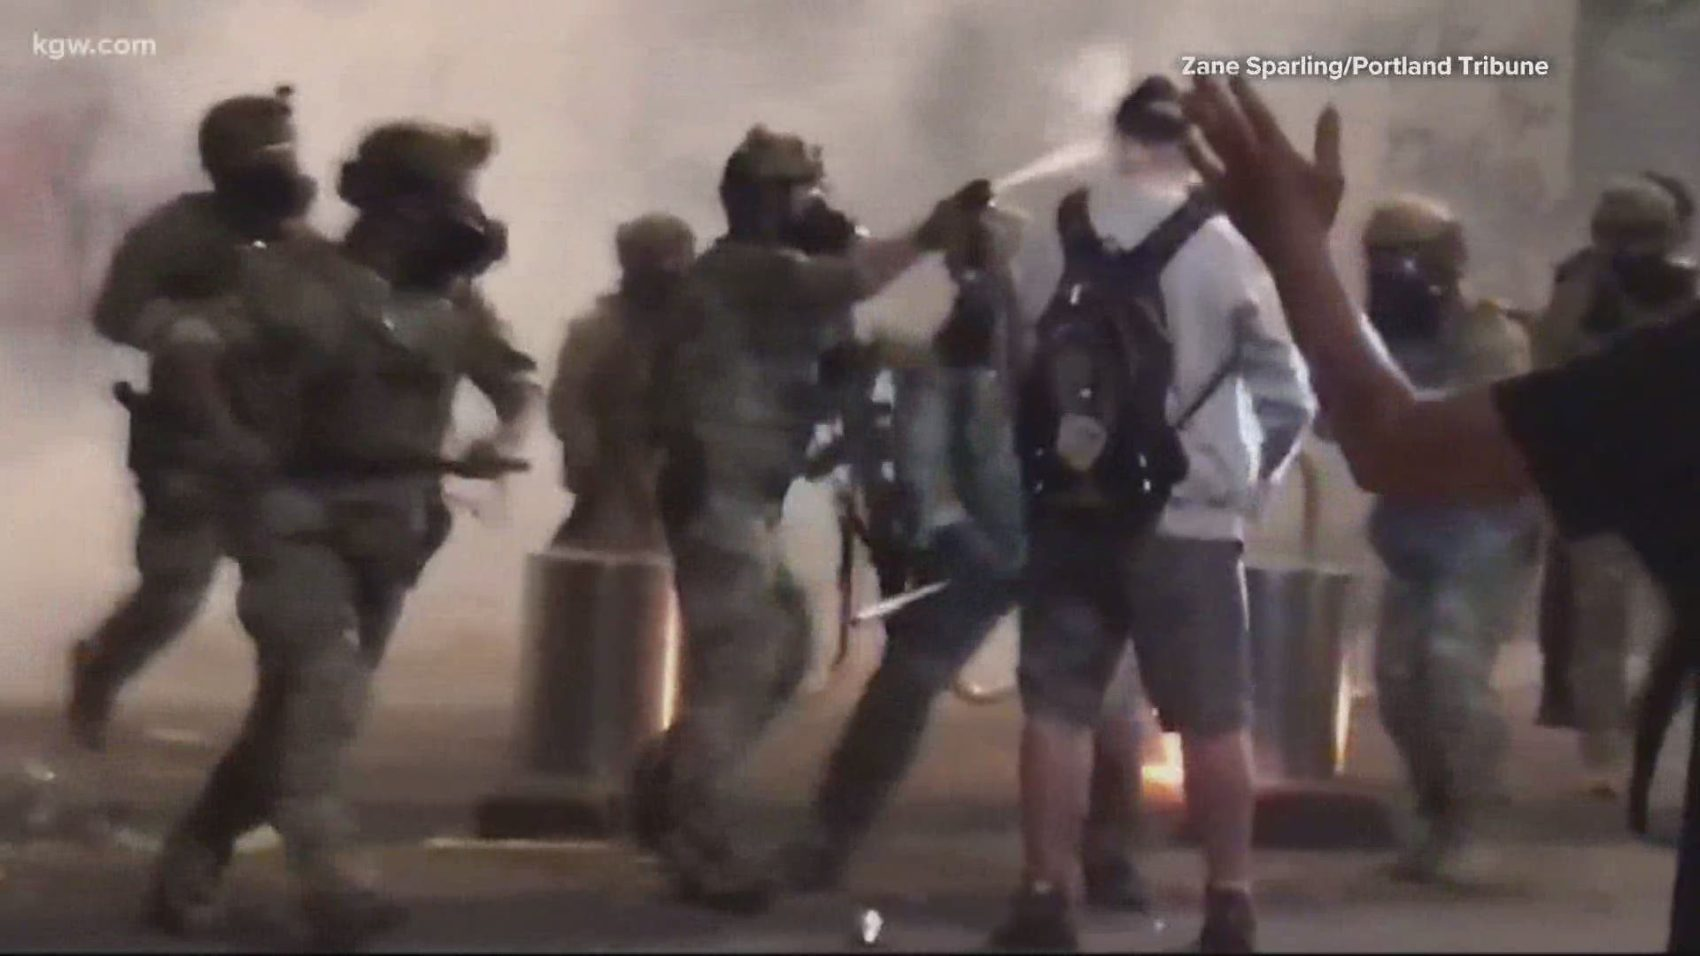 Oregon Congresswoman: Federal Police 'Inflaming' the Protesters in Portland